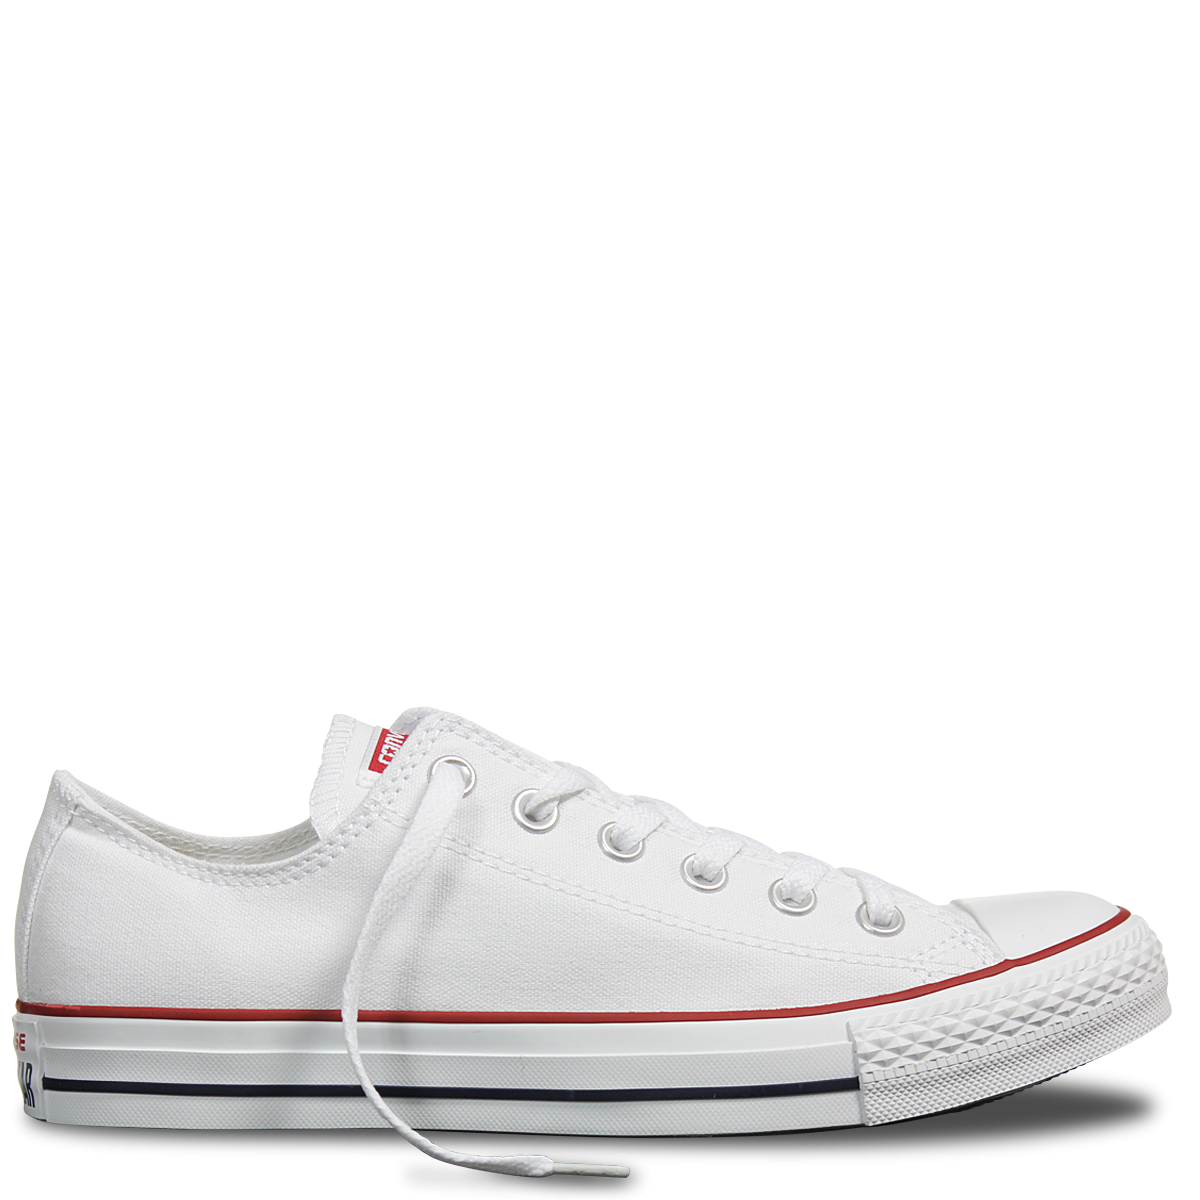 Chuck Taylor All Star Classic Colour Low Optical White  72b97b4a66c1